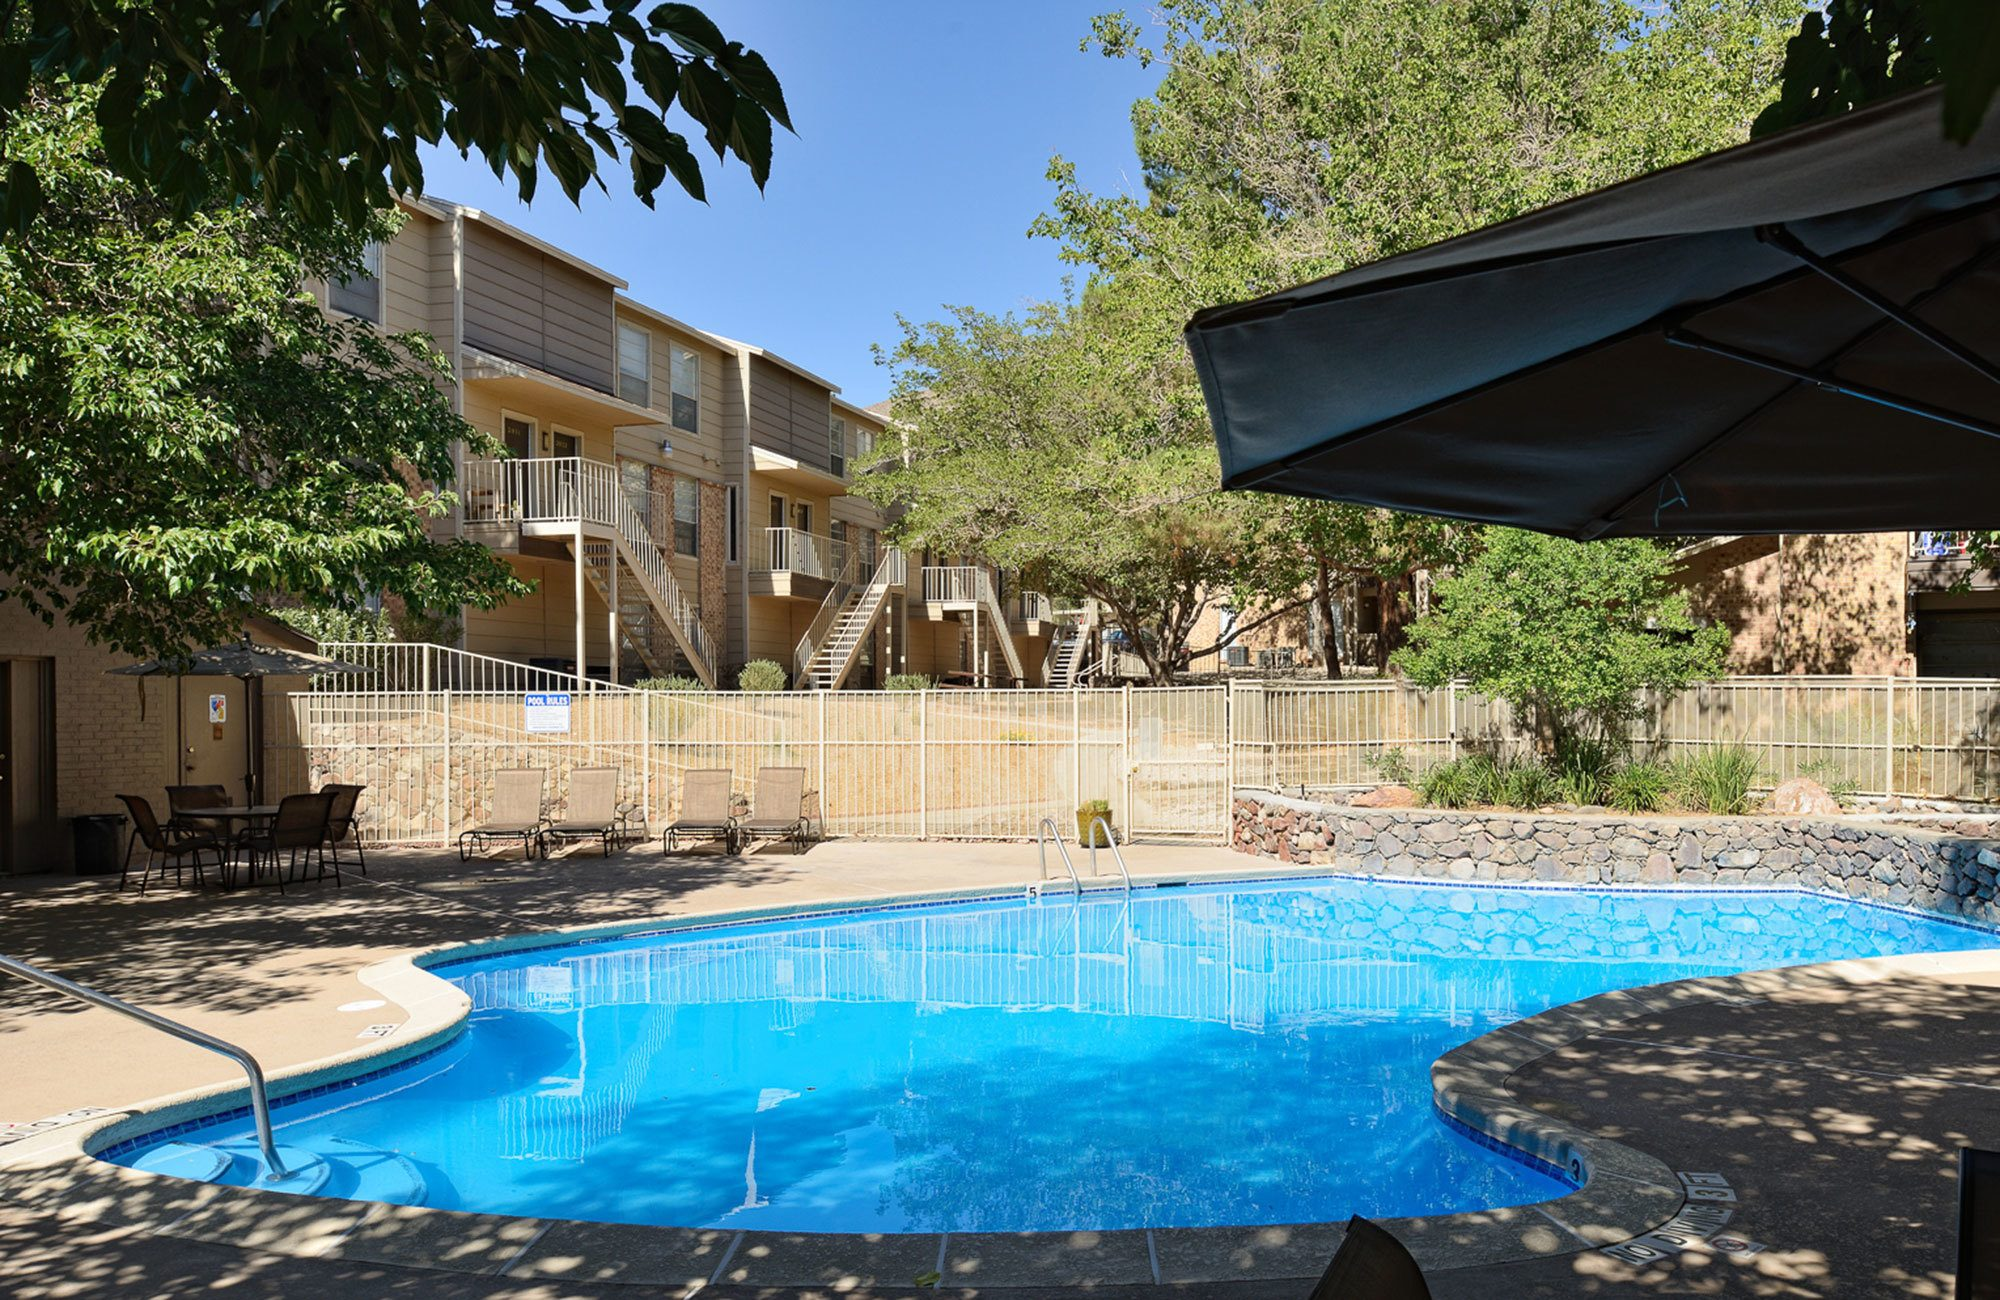 Apartments In El Paso Mountain Village In El Paso Tx 79912